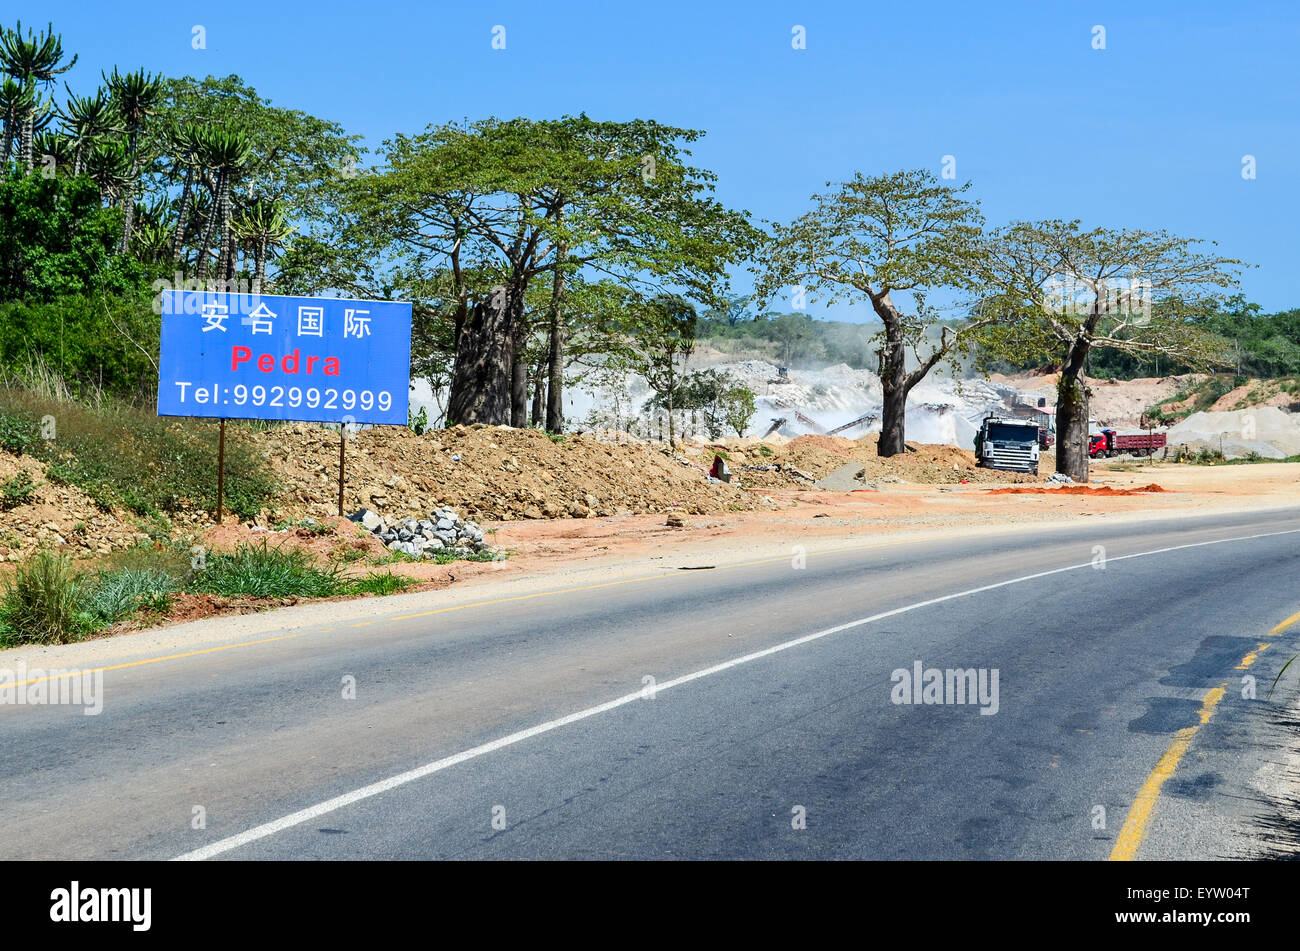 Chinese quarry by a tar road near Caxito in Angola - Stock Image